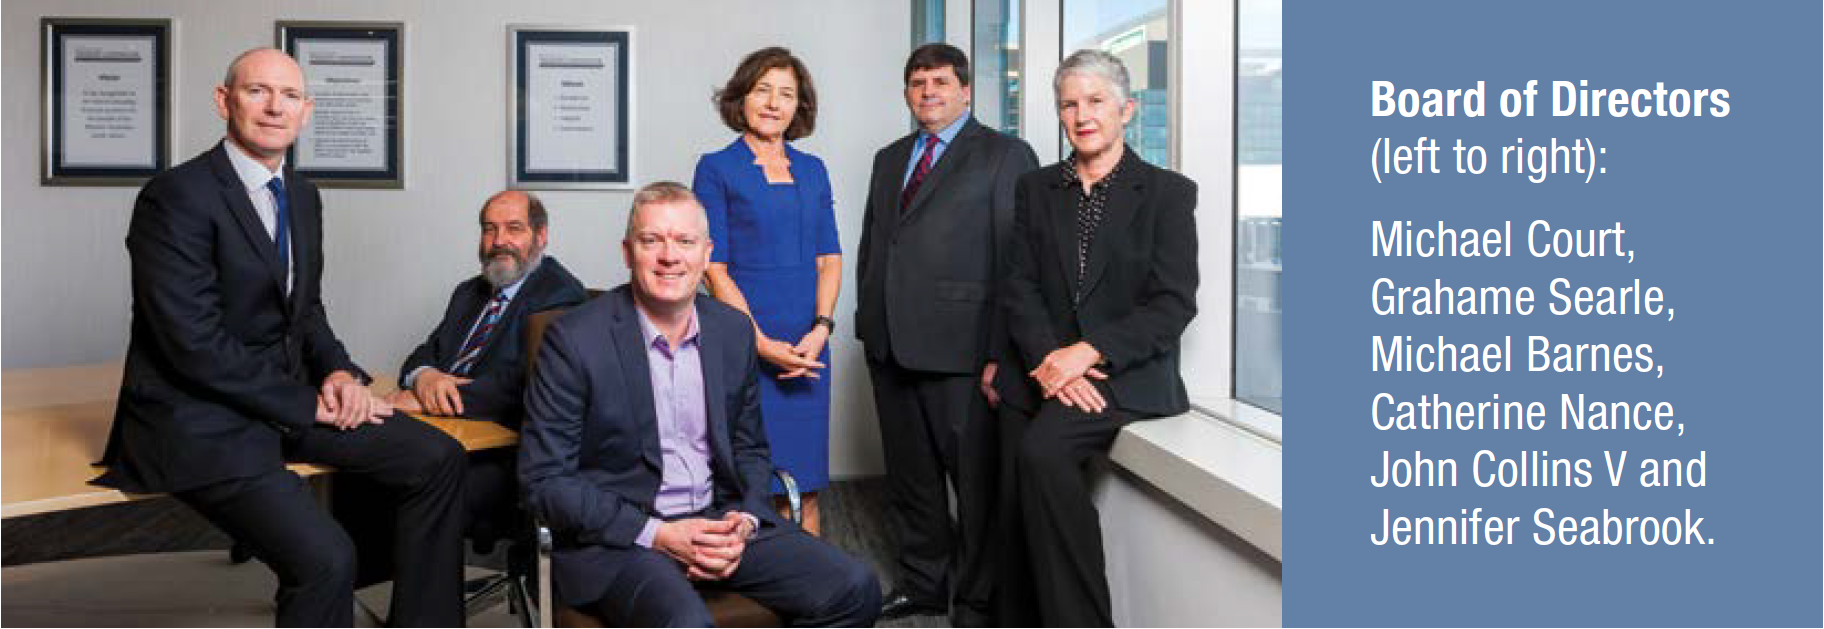 WATC's Board of Directors (left to right): Michael Court, Grahame Searle, Michael Barnes, Catherine Nance, John Collins V and Jennifer Seabrook.